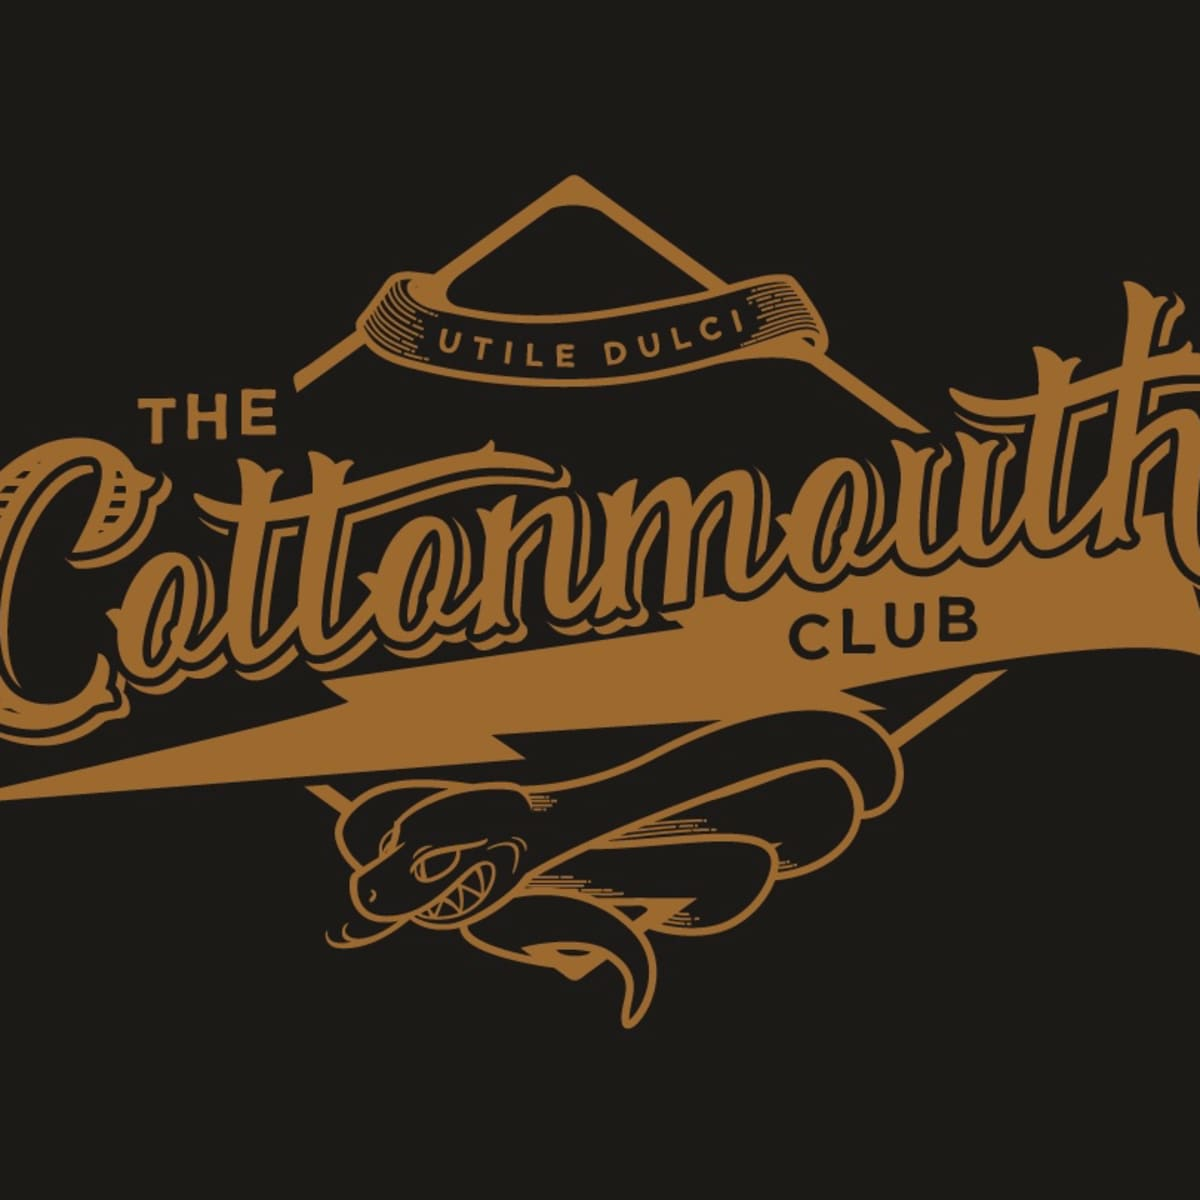 Cottonmouth Club logo